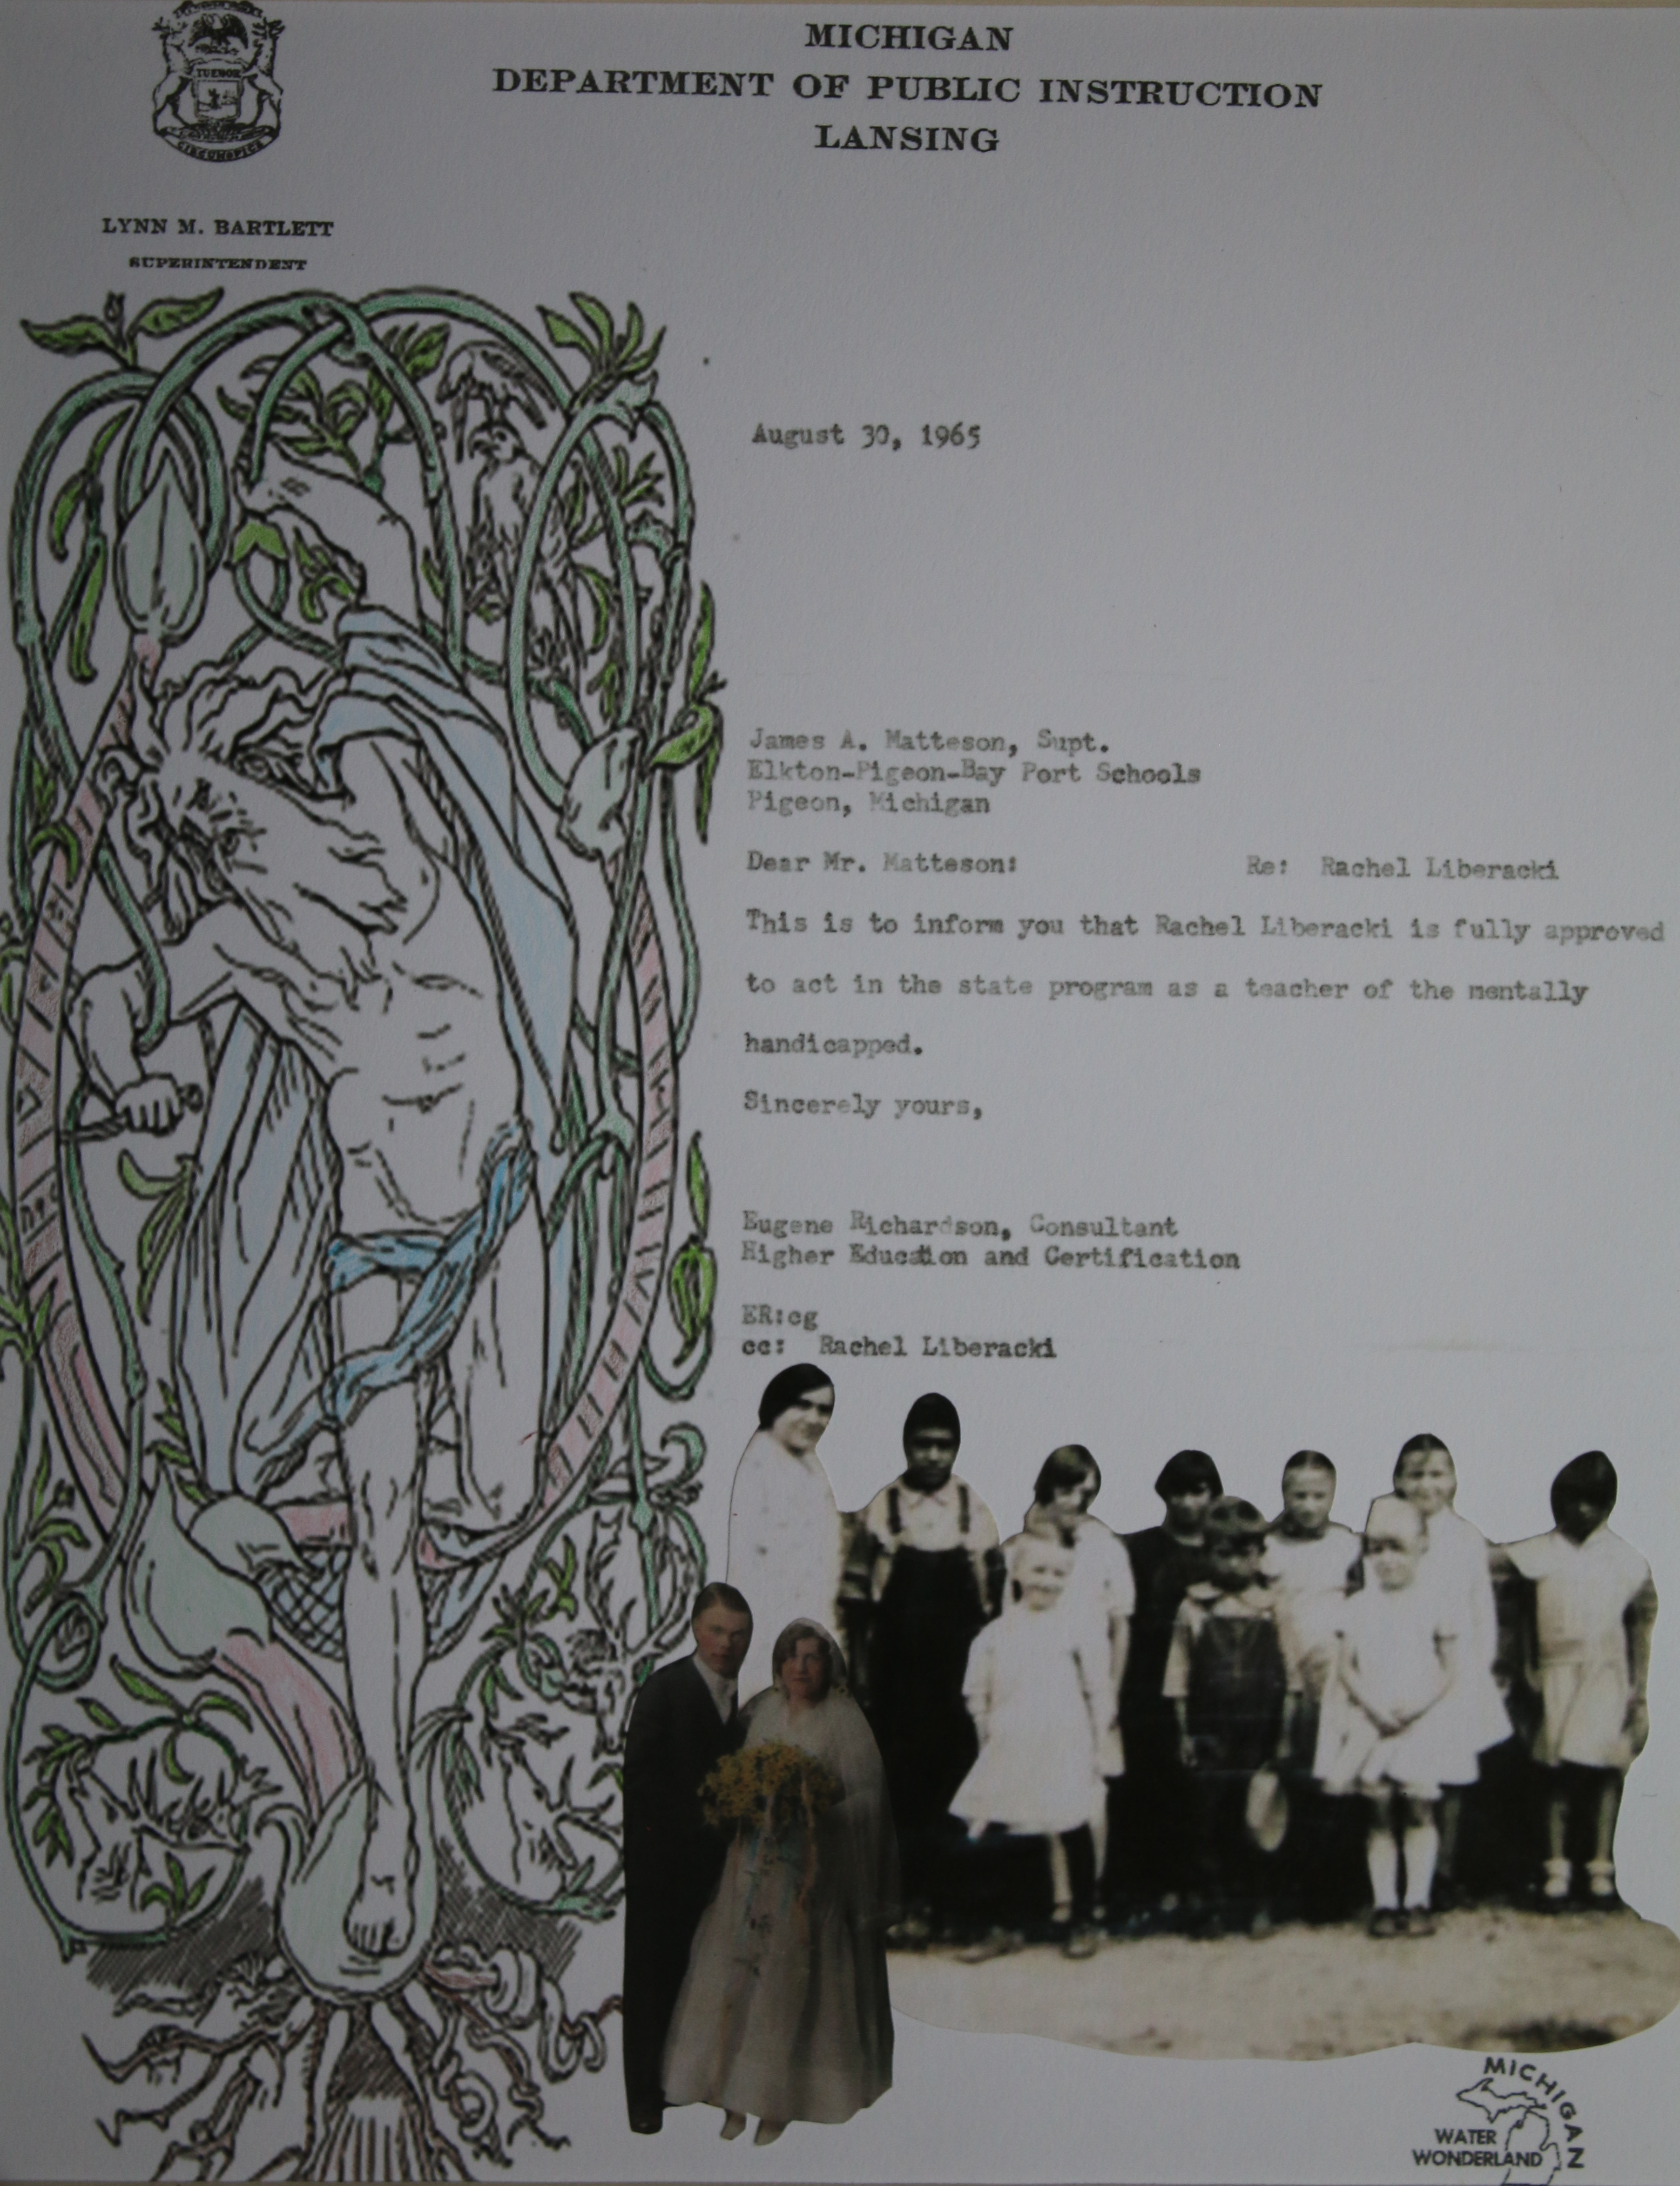 The artwork includes images of Rachel Wilcox Liberacki with her students in circa 1930, her marriage to Alexander Liberacki in 1931, a 1965 letter certifying she can teach special education, and an image of the god Woden.